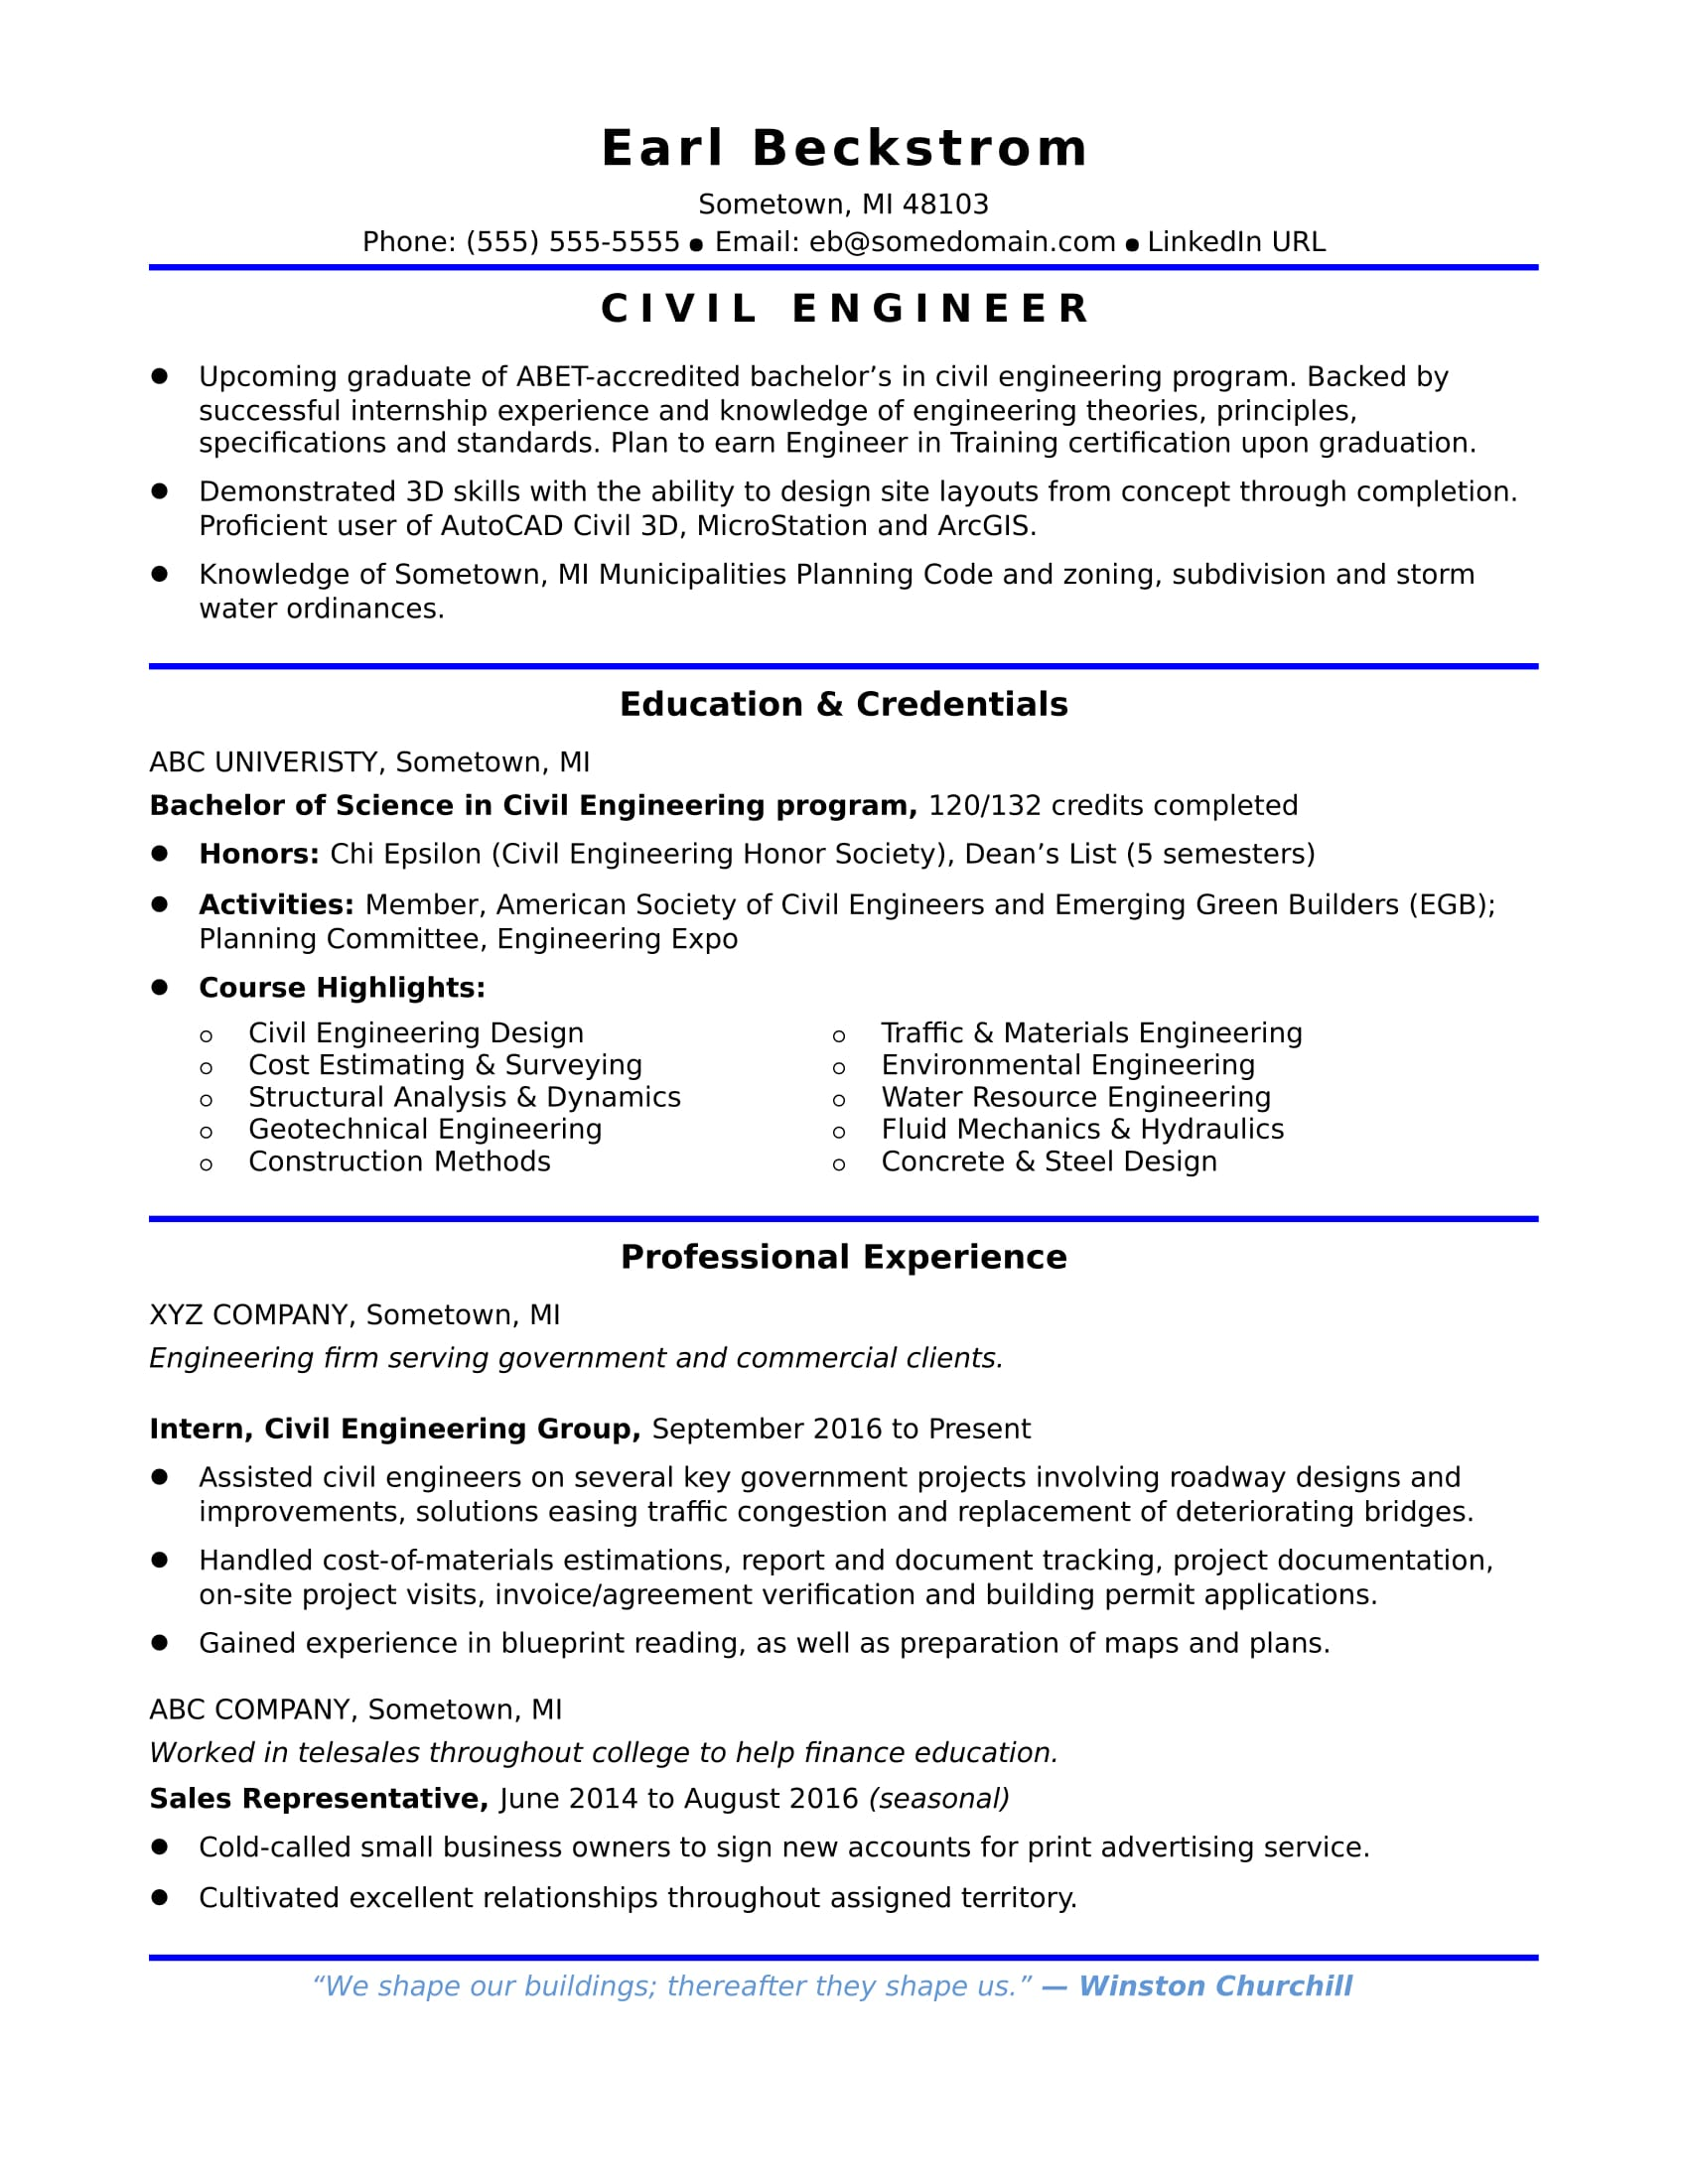 sample resume for an entry level civil engineer - Linkedin Url On Resume